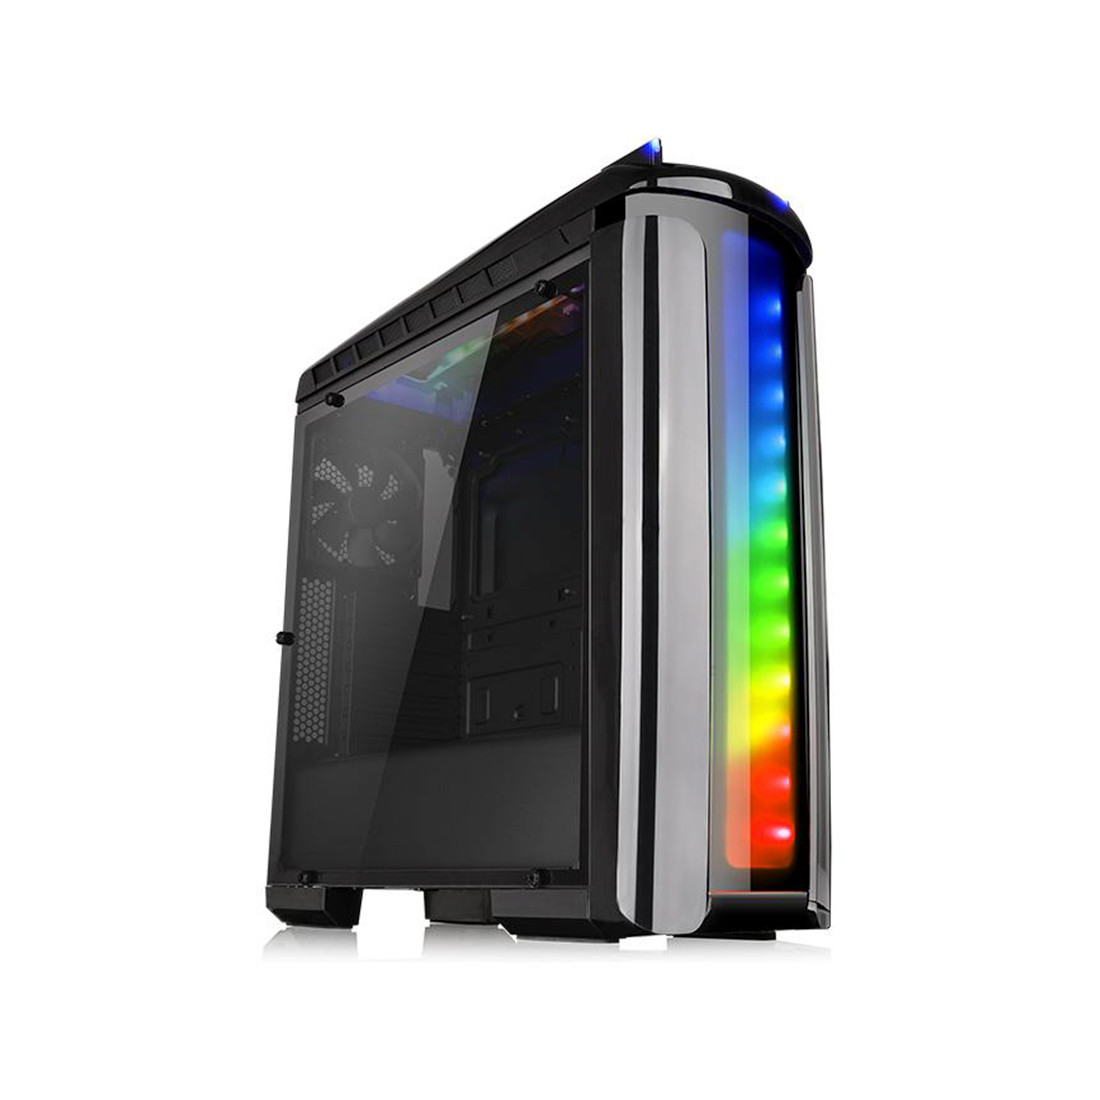 Компьютерный корпус Thermaltake Versa C22 RGB Black